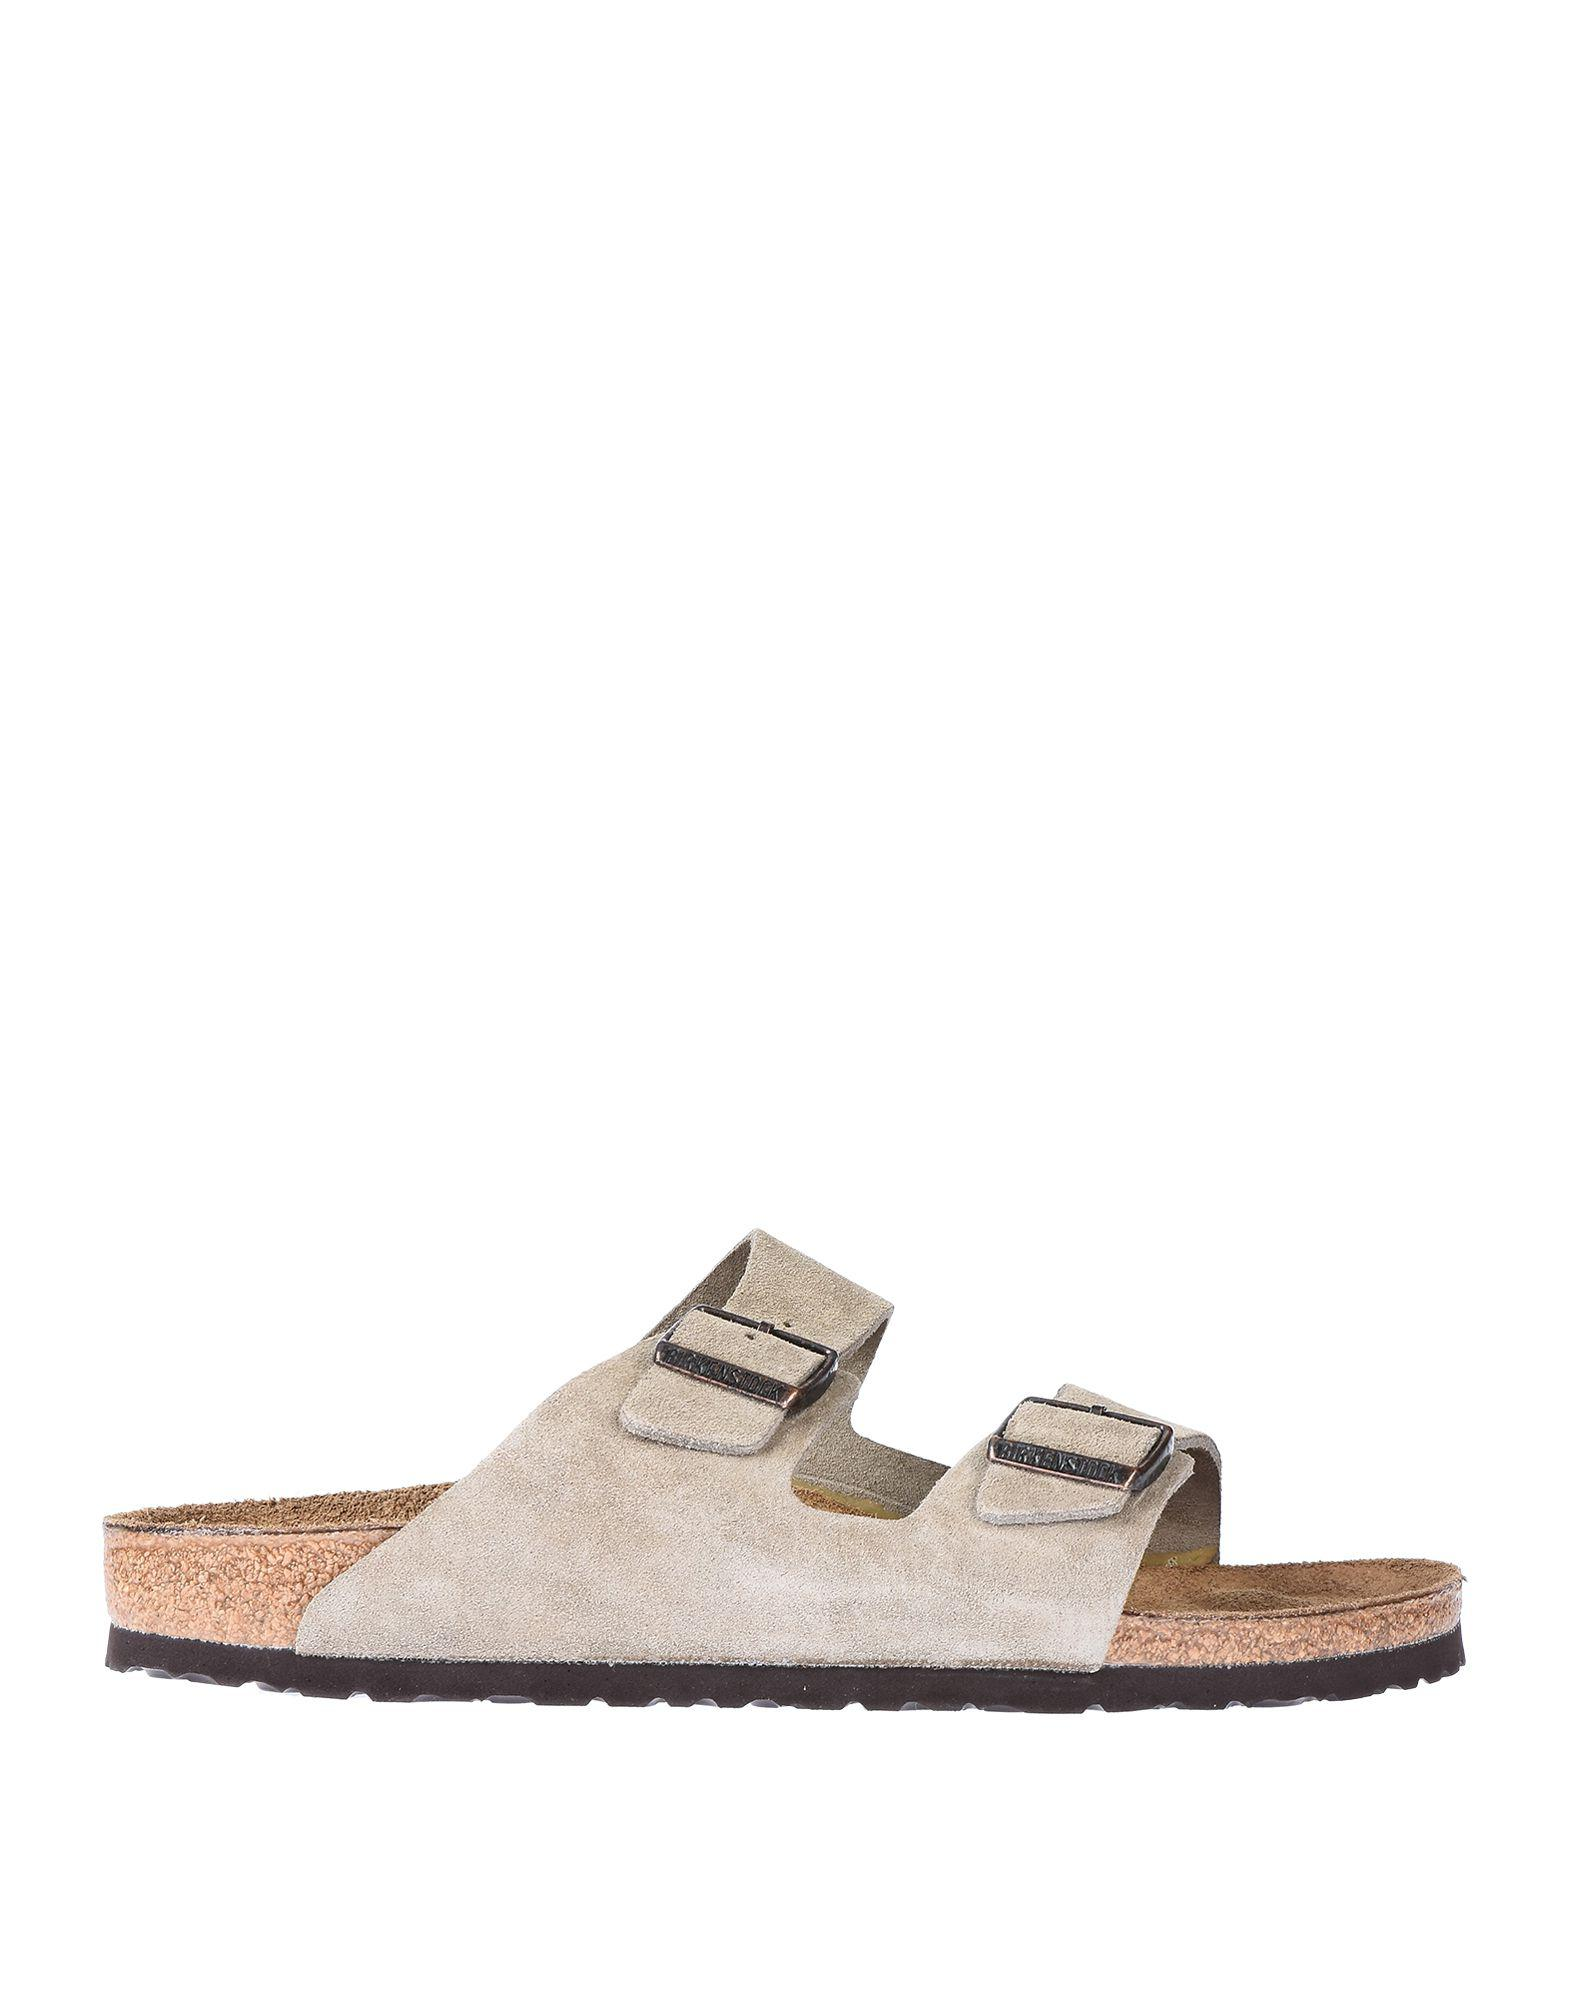 77d3f093c58 Lyst - Birkenstock Sandals in Gray for Men